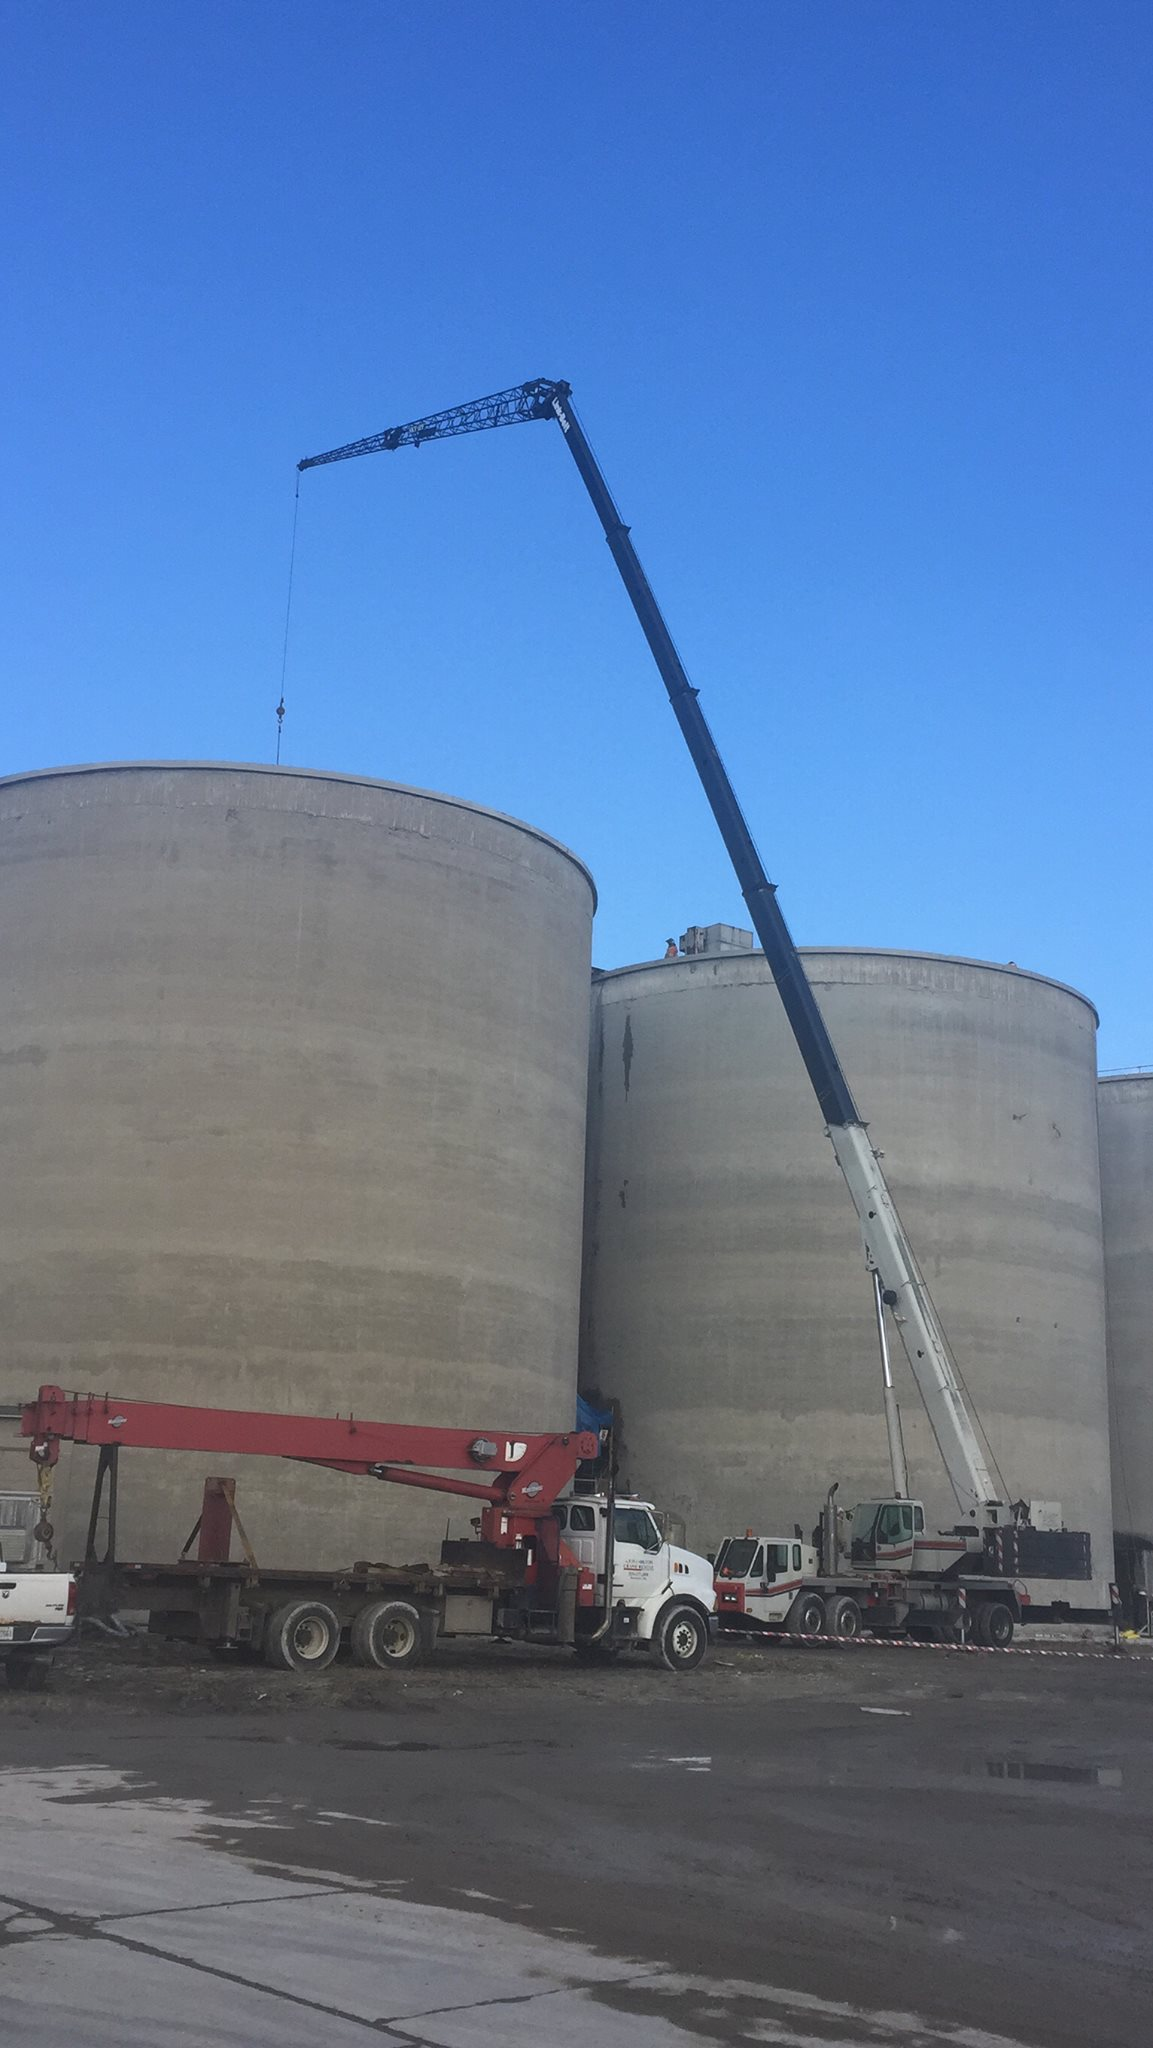 Millwright work completed by mobile crane